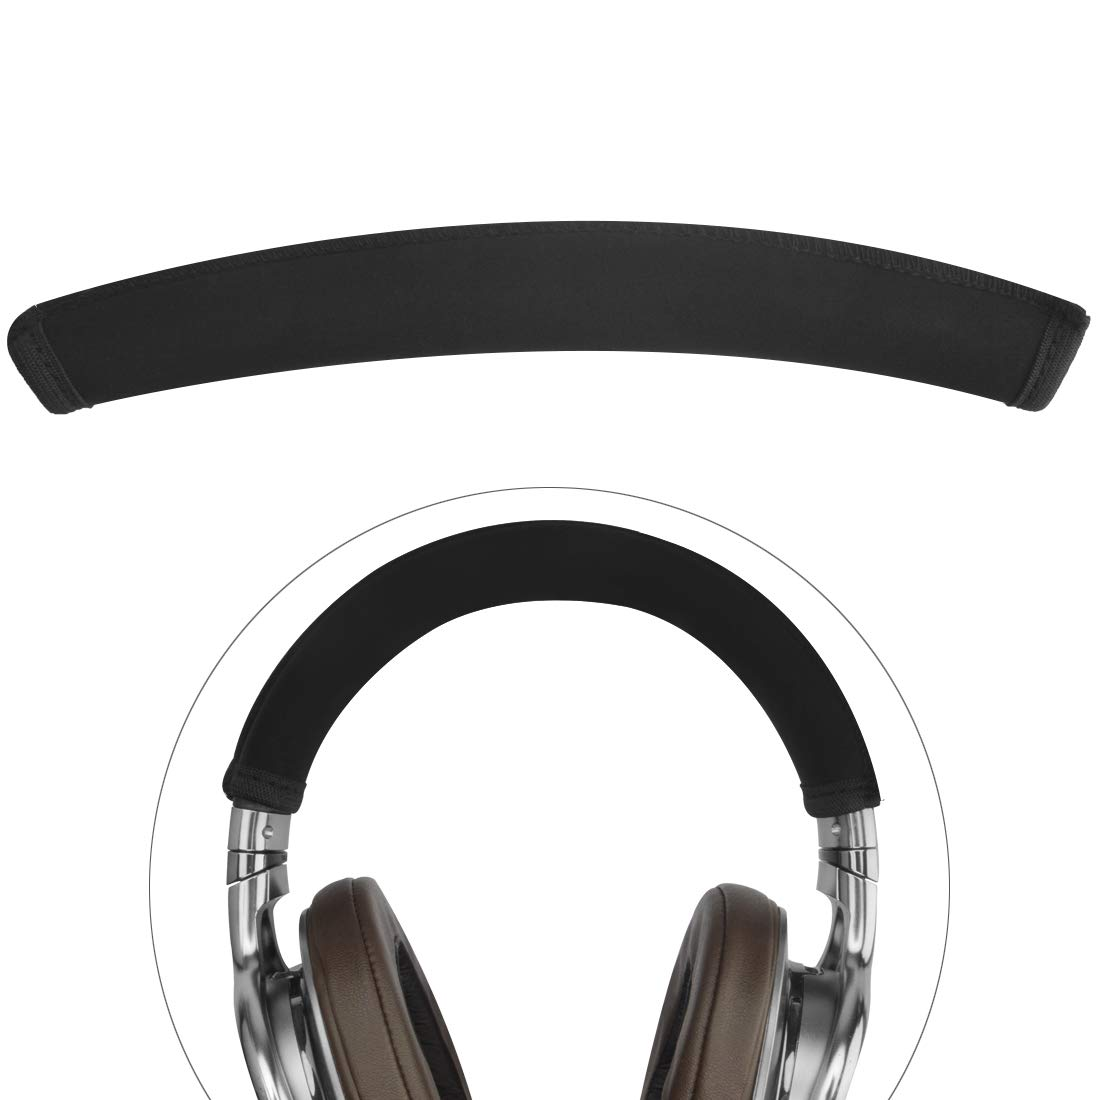 Linkidea Headband Cover, Compatible with Sony MDR 1A, 1ADAC, 1ABT, 1R, 1RNC Headphones Replacement Headband Protector/Replacement Headband Cushion Pad Repair Parts/Easy DIY Installation (Black) LI1727